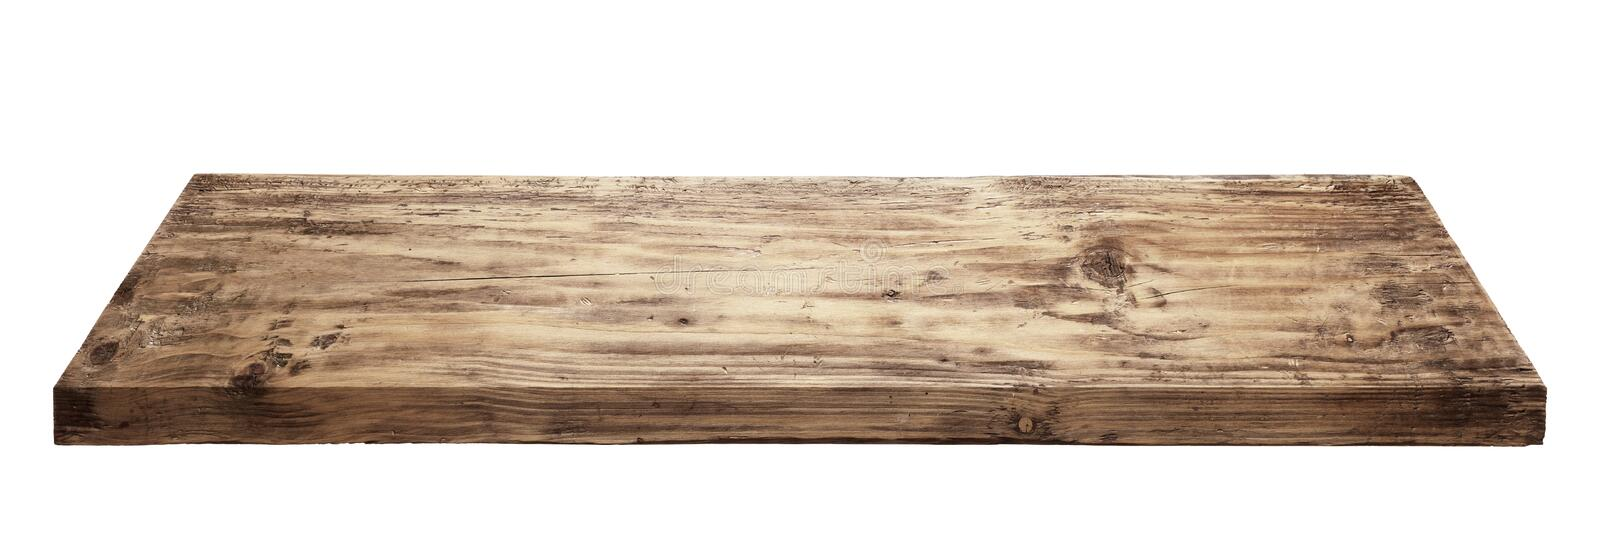 Download Table en bois image stock. Image du rétro, configuration - 56484221